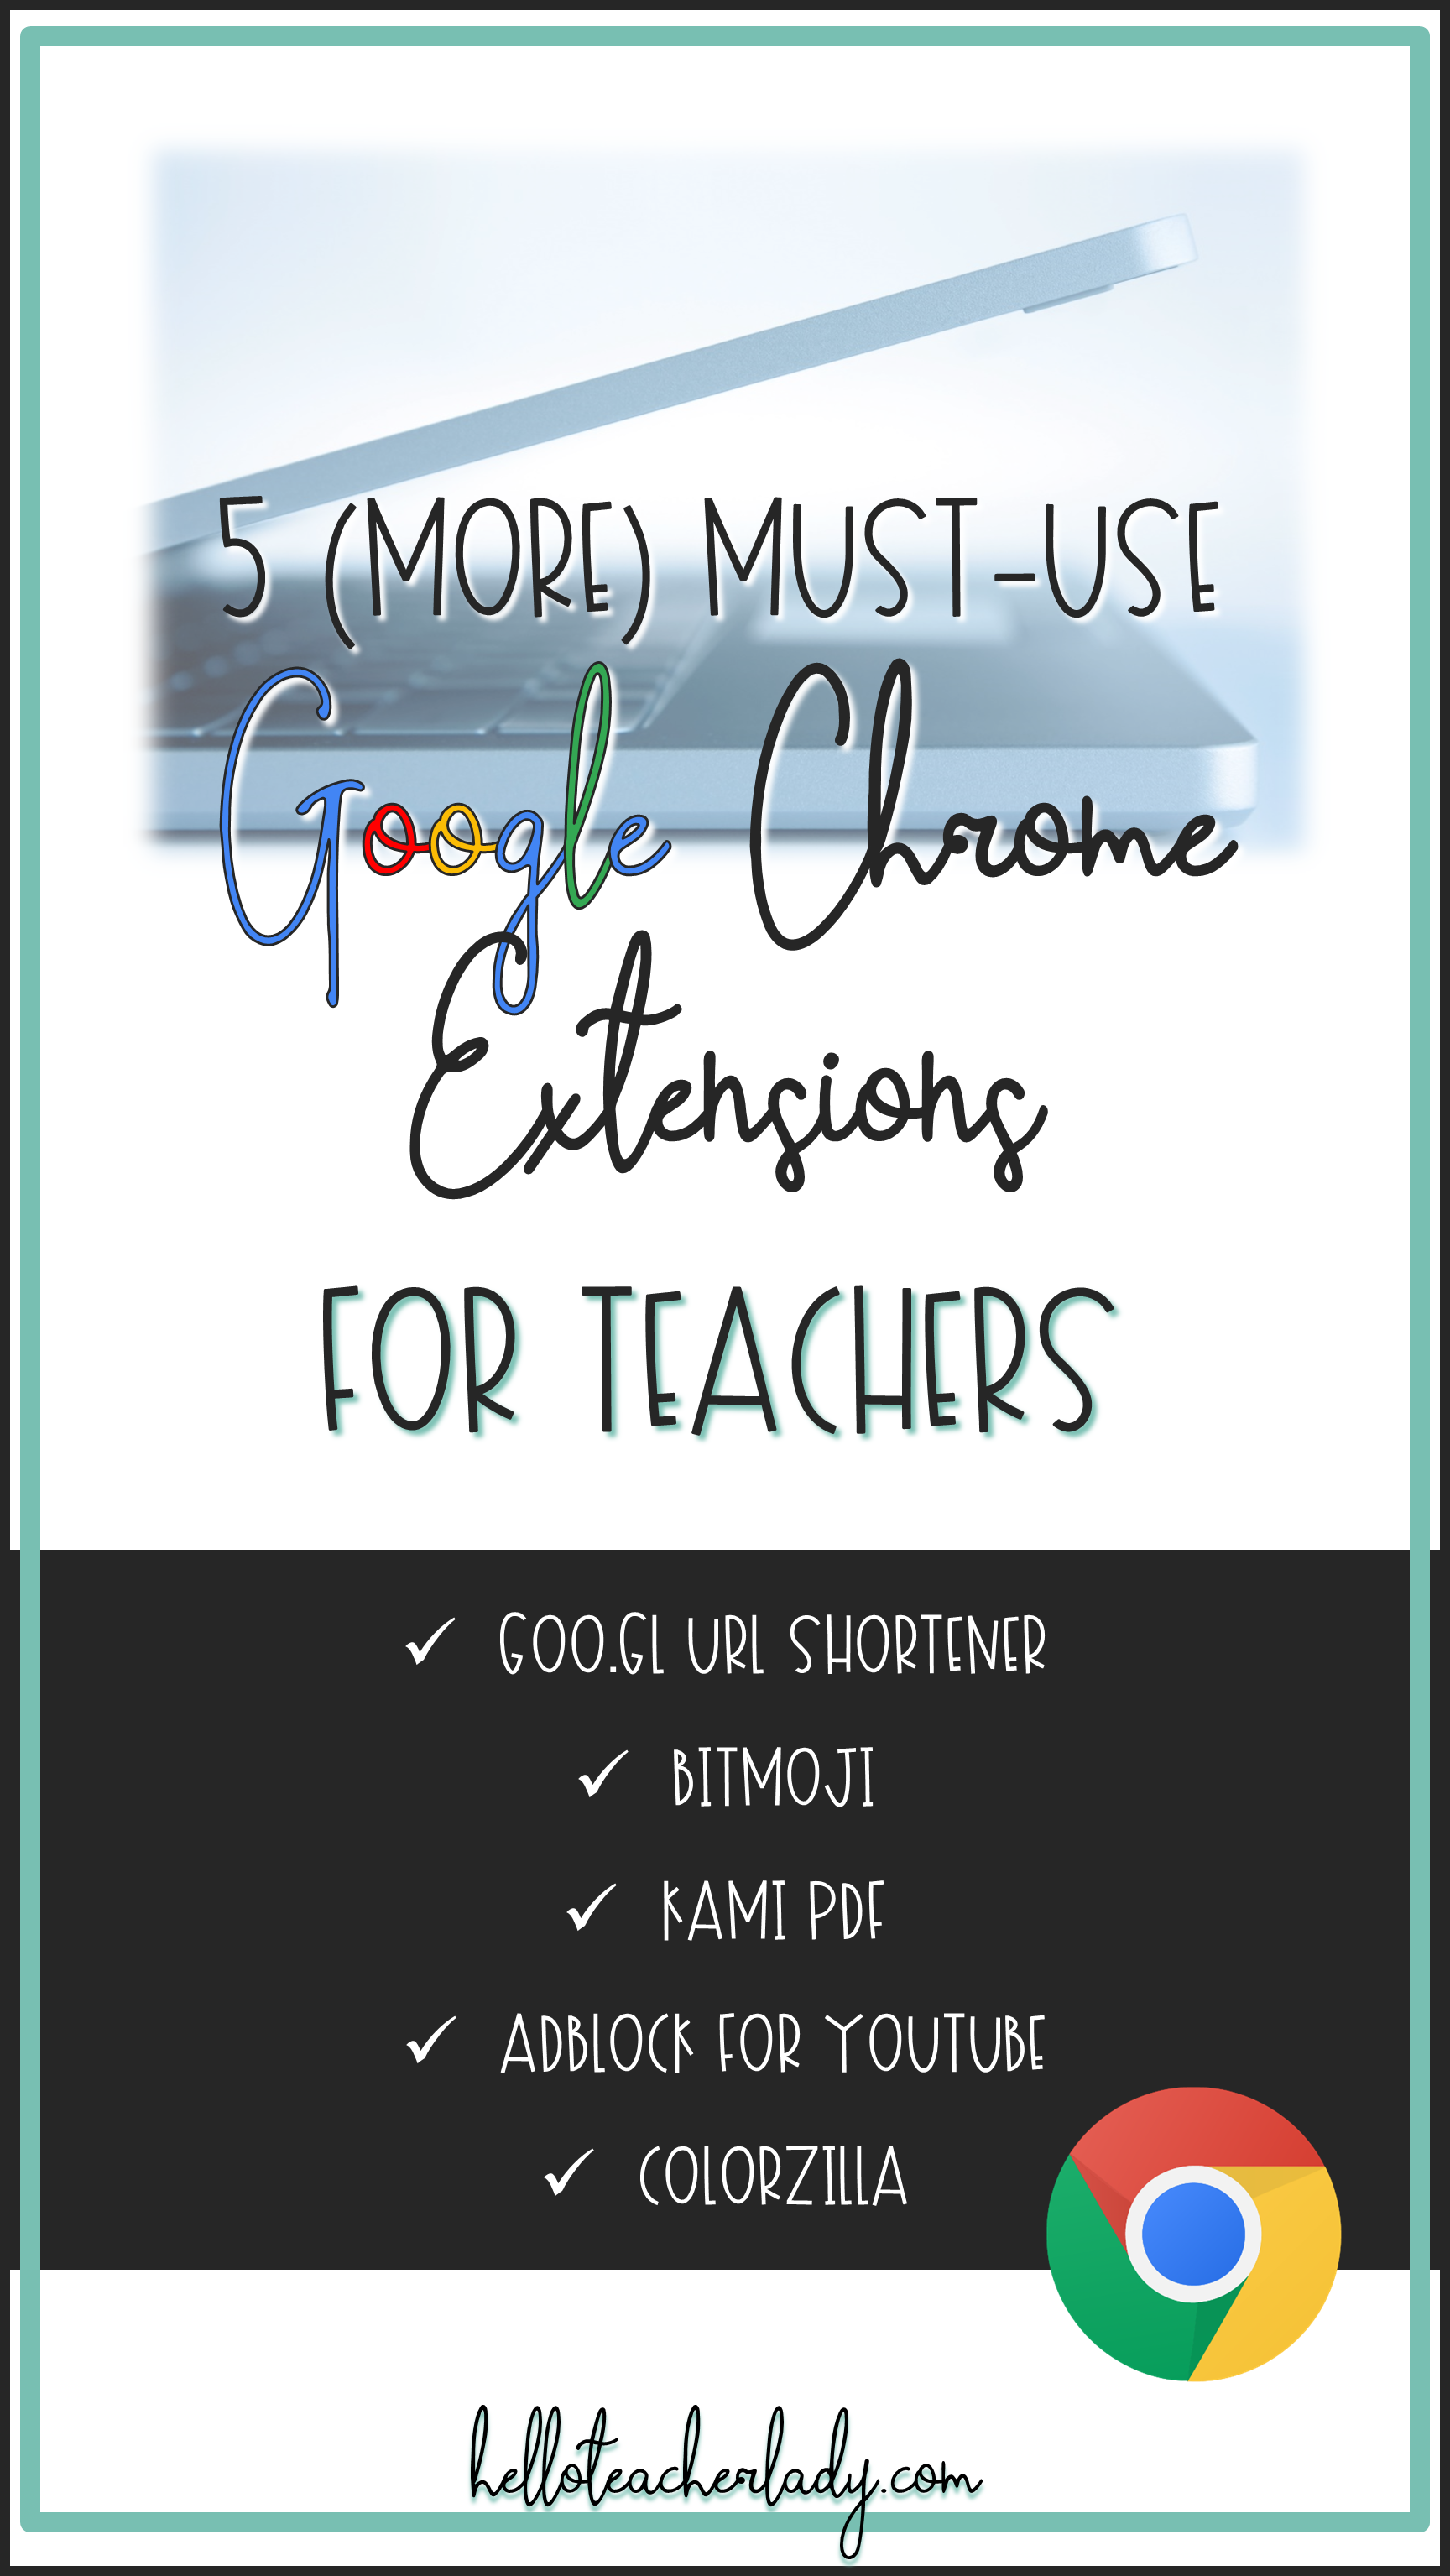 5 (More) Must-Use Google Chrome Extensions for Teachers